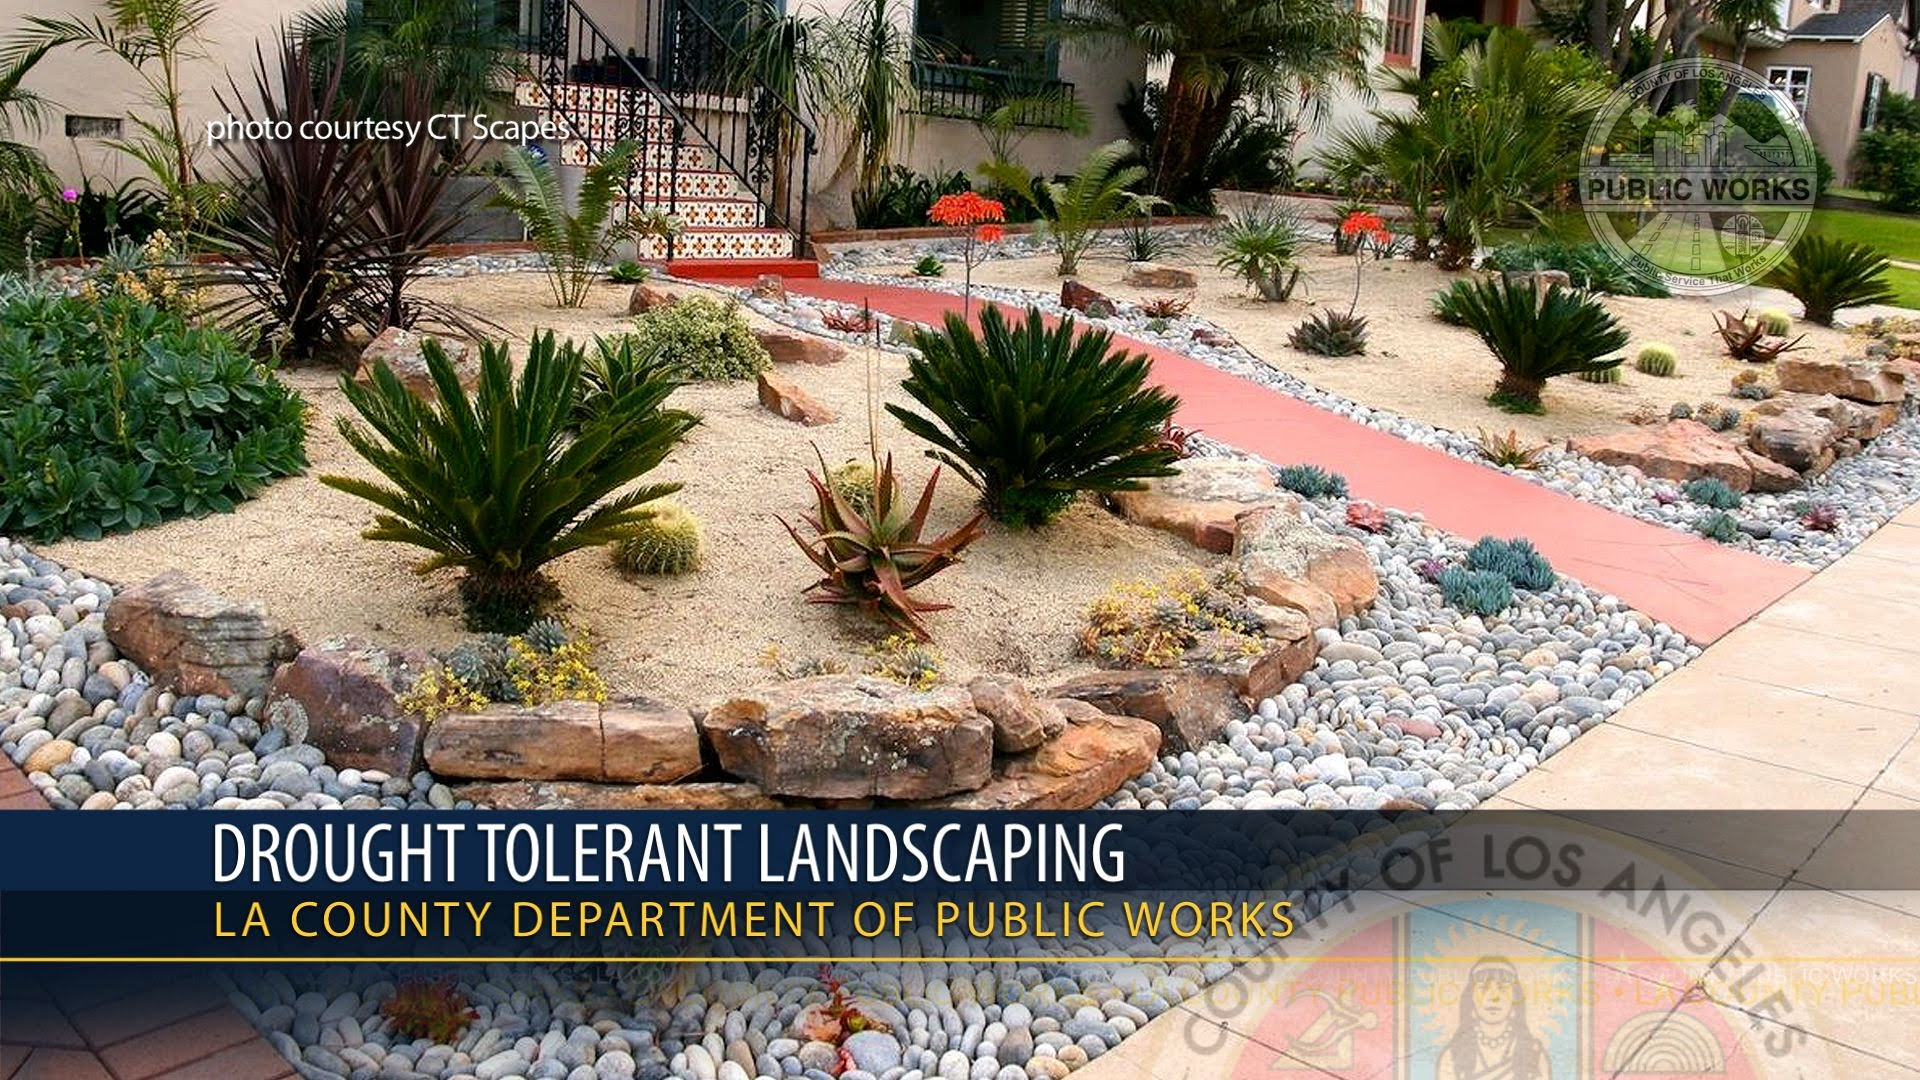 drought resistant landscaping psa - drought tolerant landscaping - youtube YLDZCSG